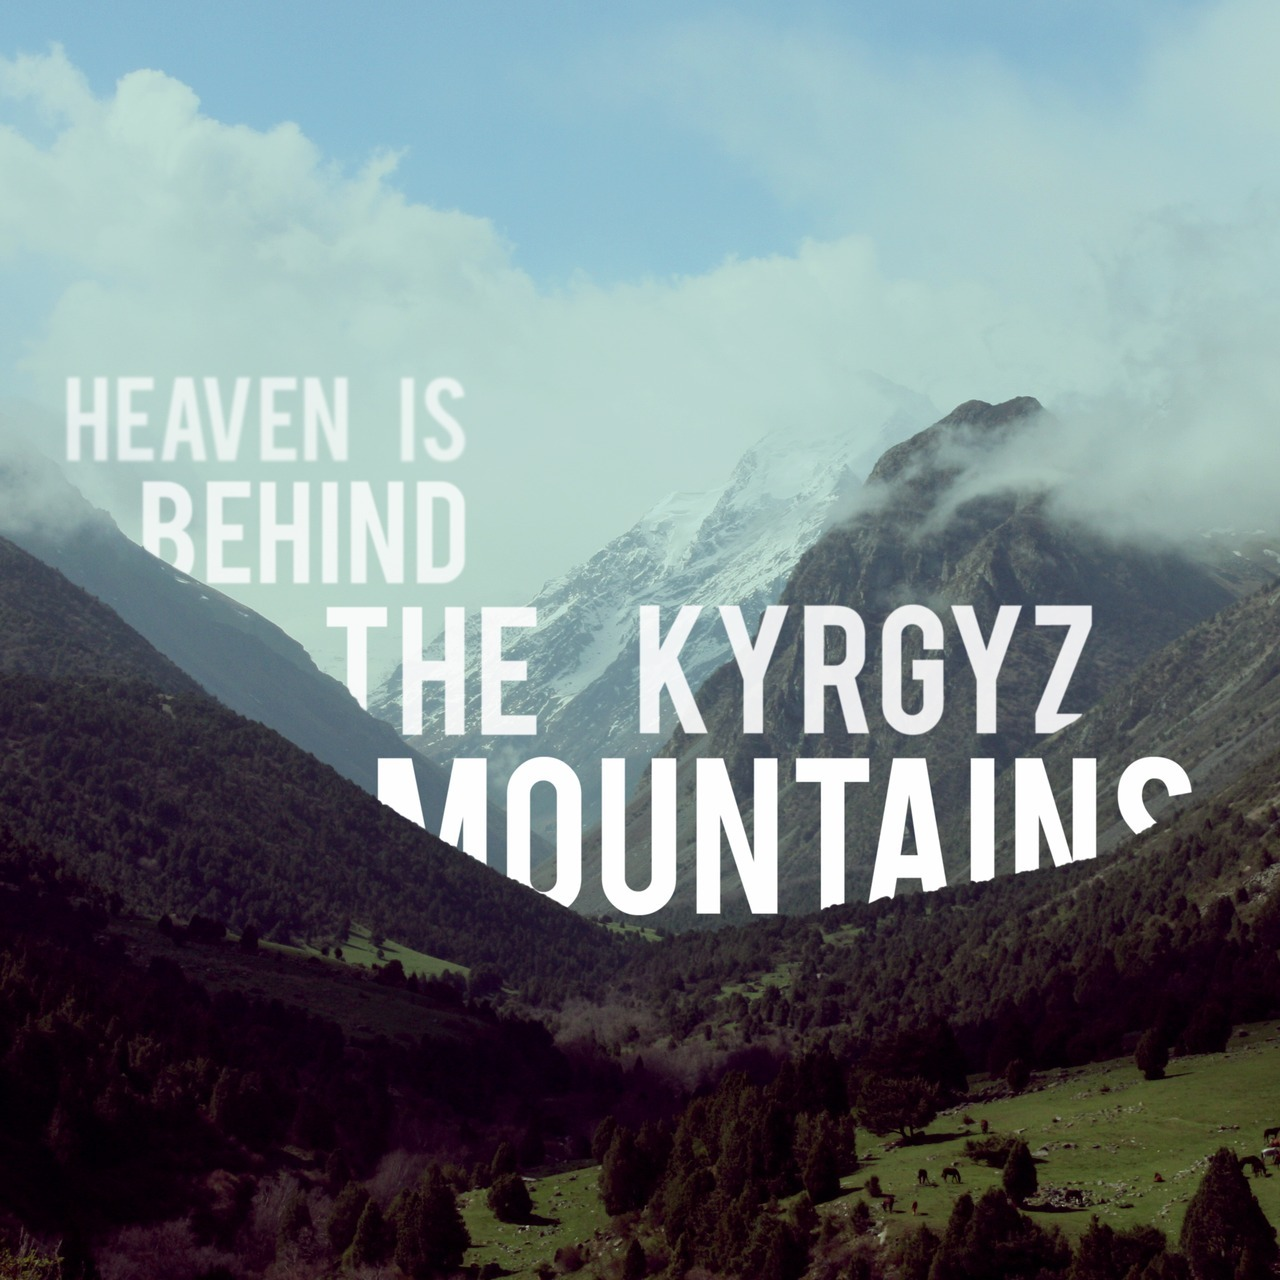 Heaven is behind the kyrgyz mountains.